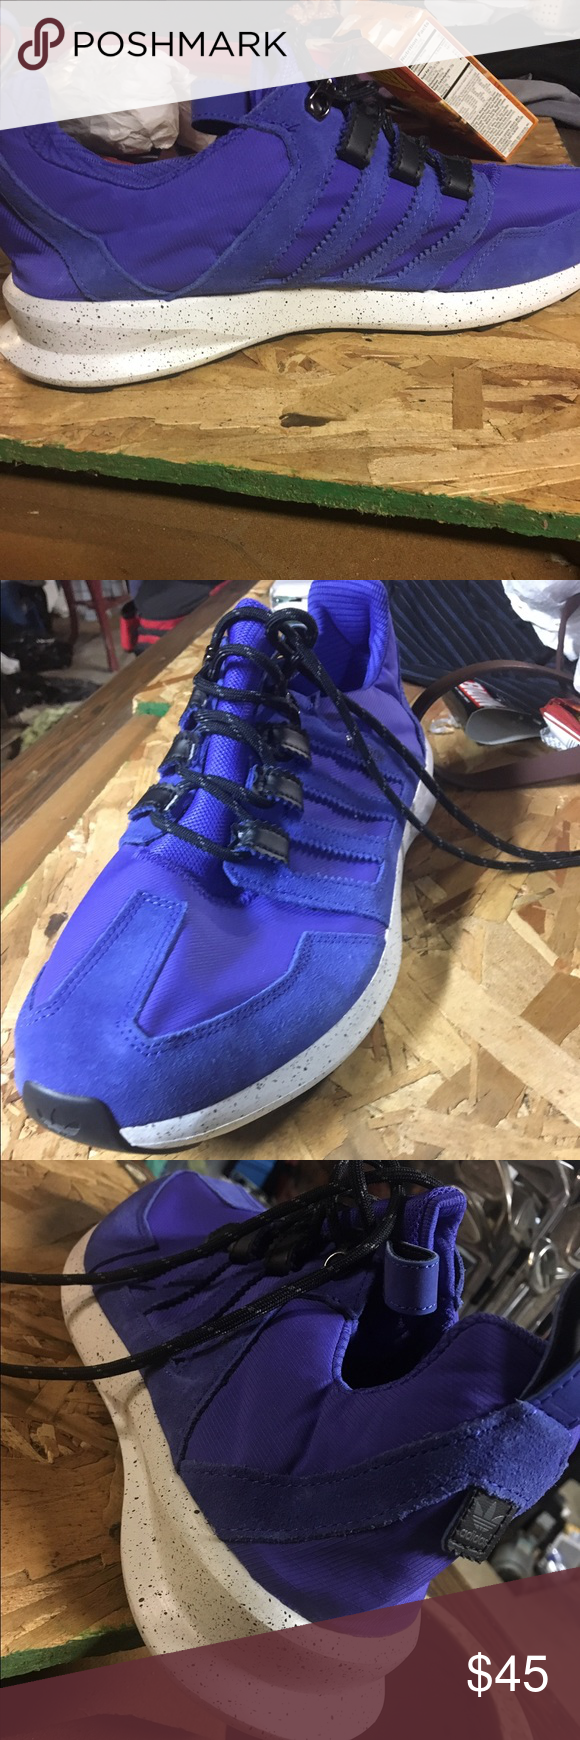 Blue adidas sl loop Royal blue. Never worn. SL loop adidas Adidas Shoes Sneakers